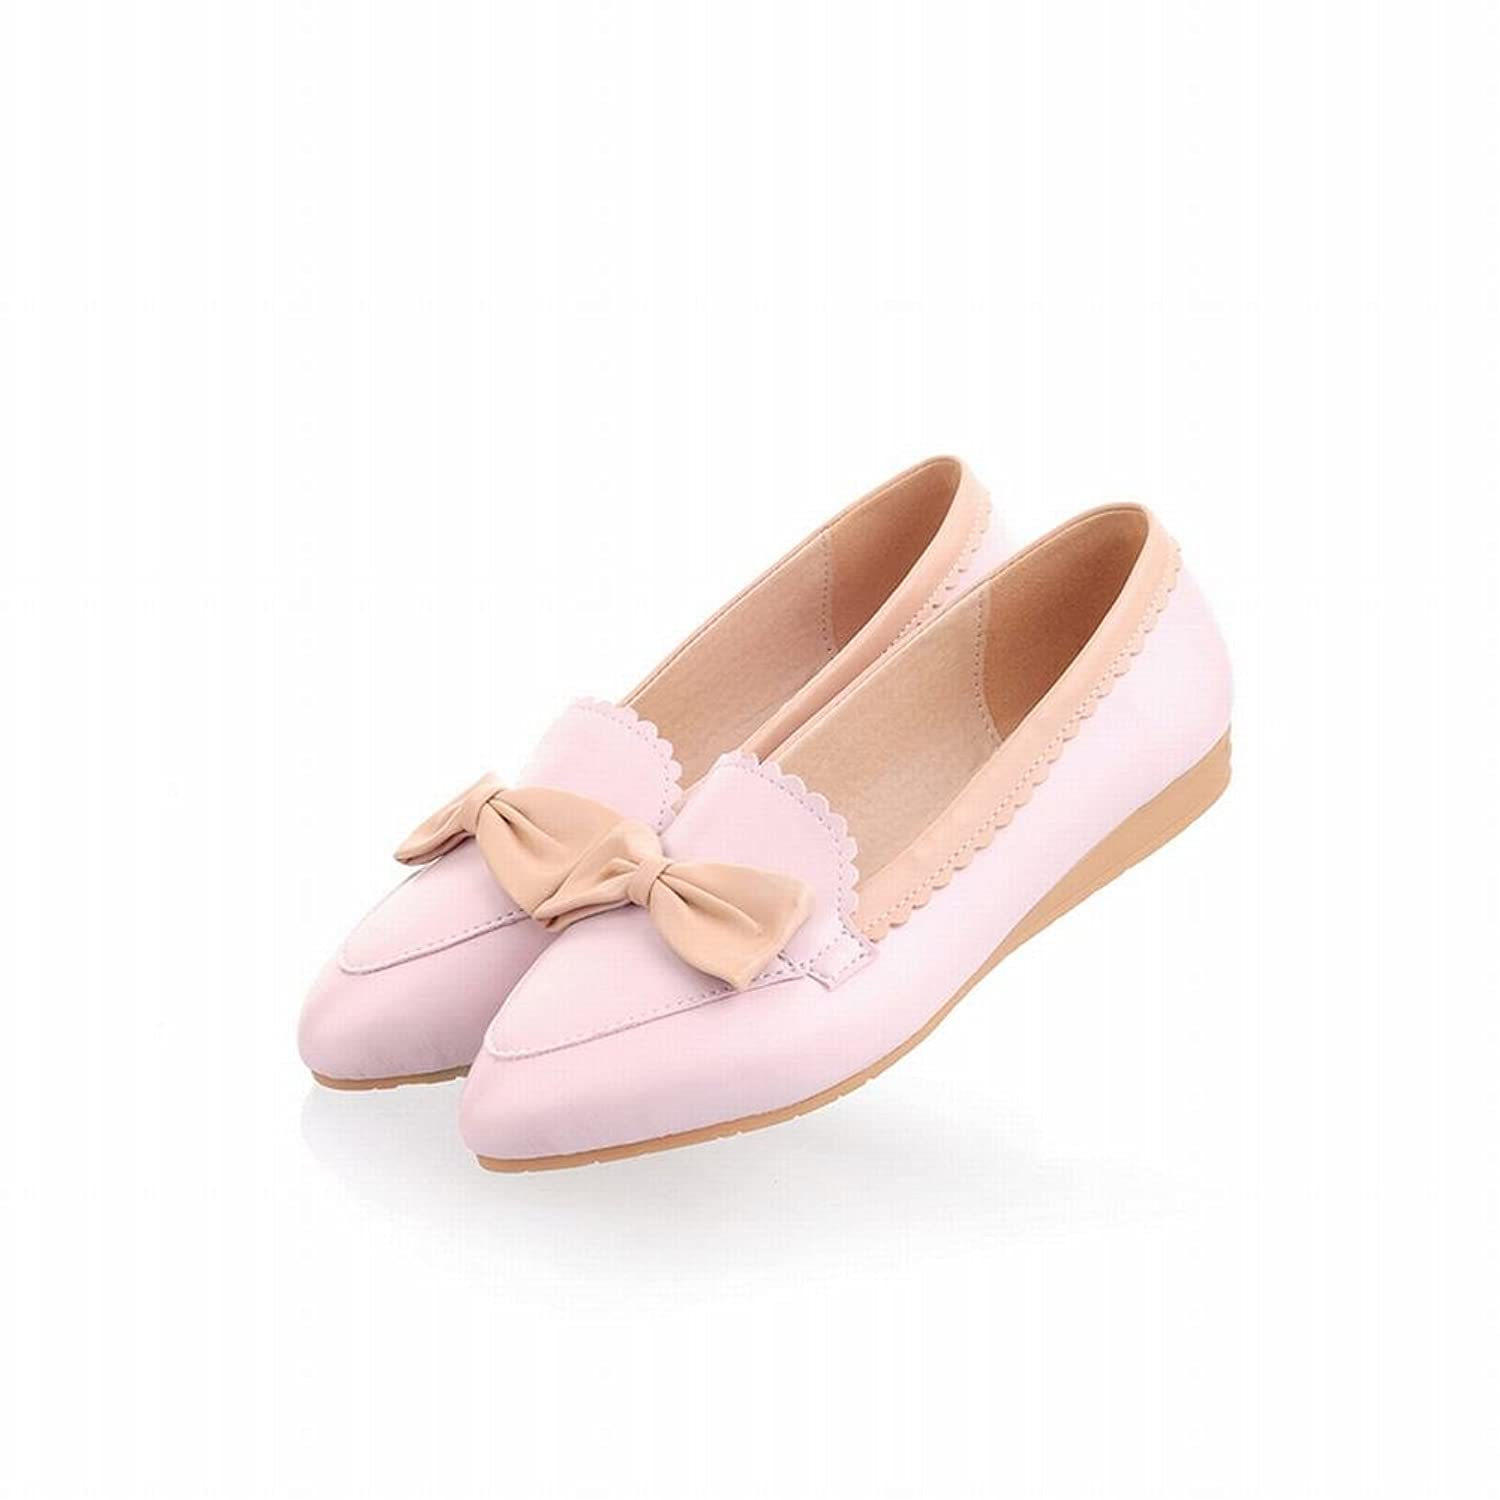 f7aa63555125 Show Shine Women s Fashion Sweet Bow Pointed Toe Low Heel Wedge Shoes  Loafer Flats Shoes durable